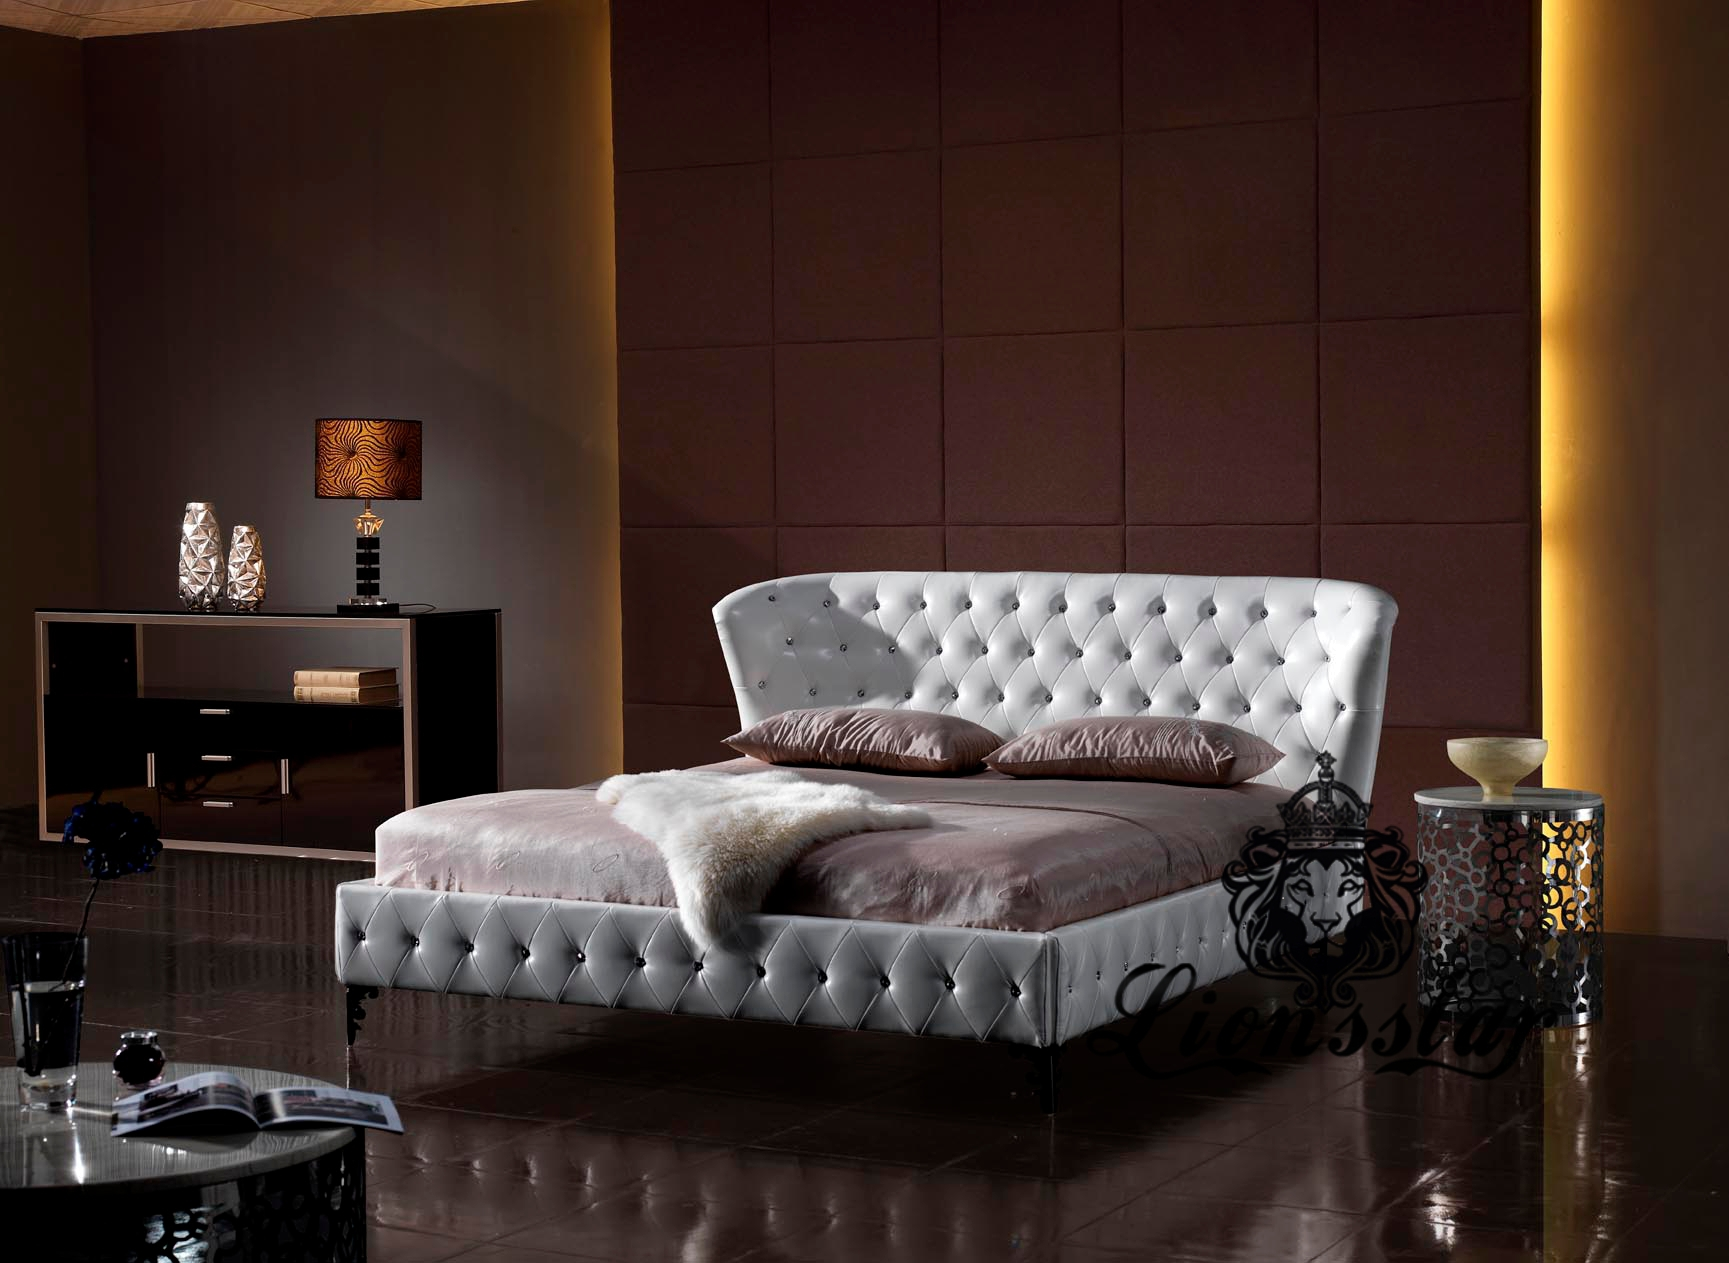 luxus bett lionsstar gmbh. Black Bedroom Furniture Sets. Home Design Ideas